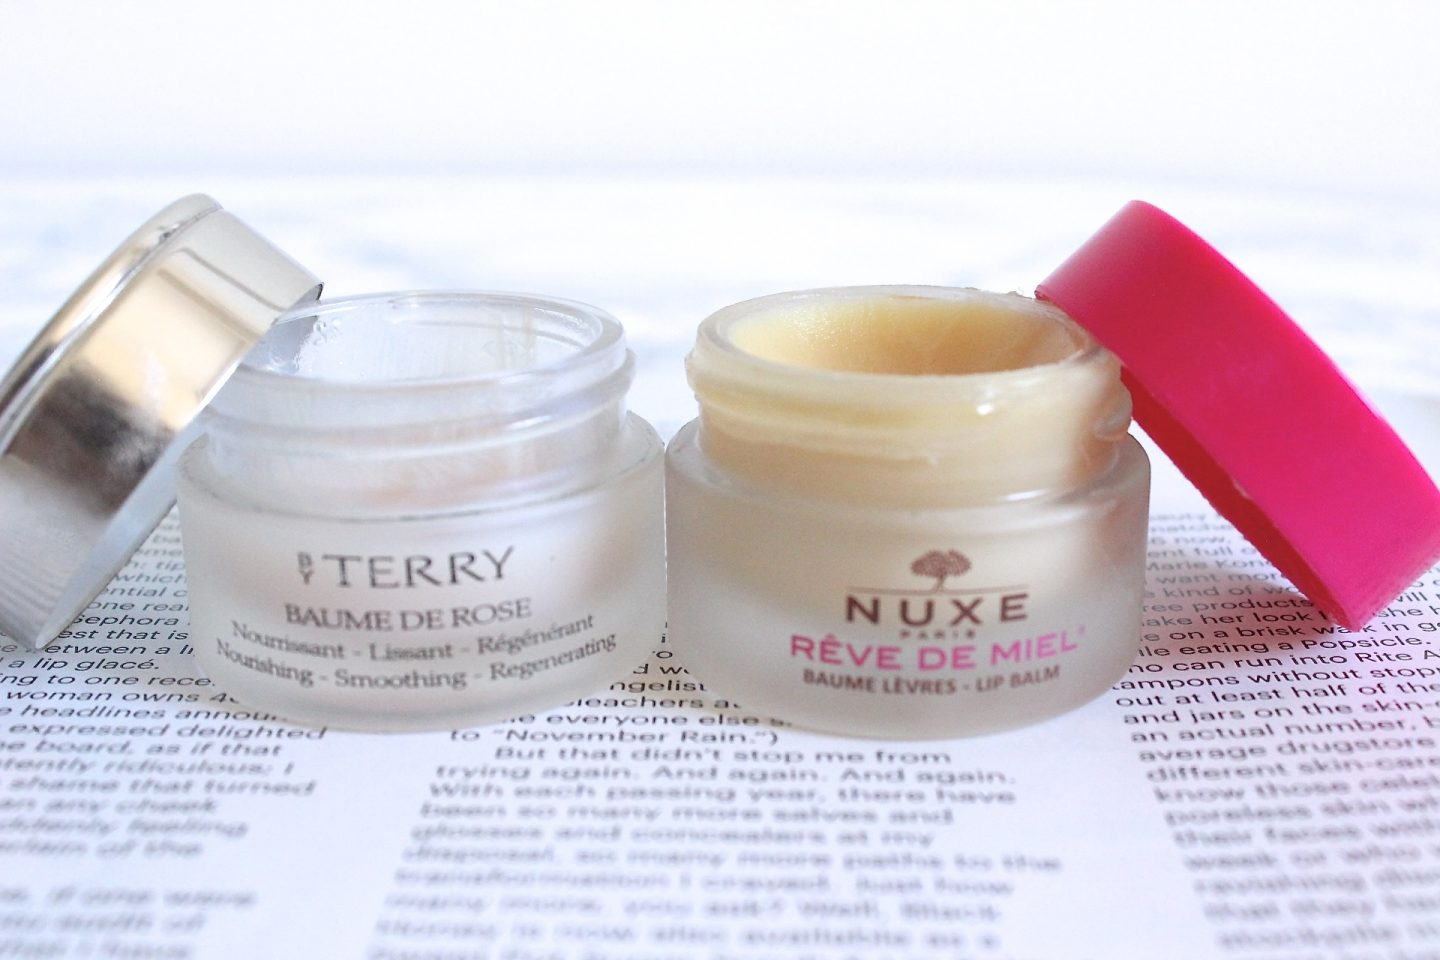 Nuxe Reve De Miel and By Terry Baume de Rose